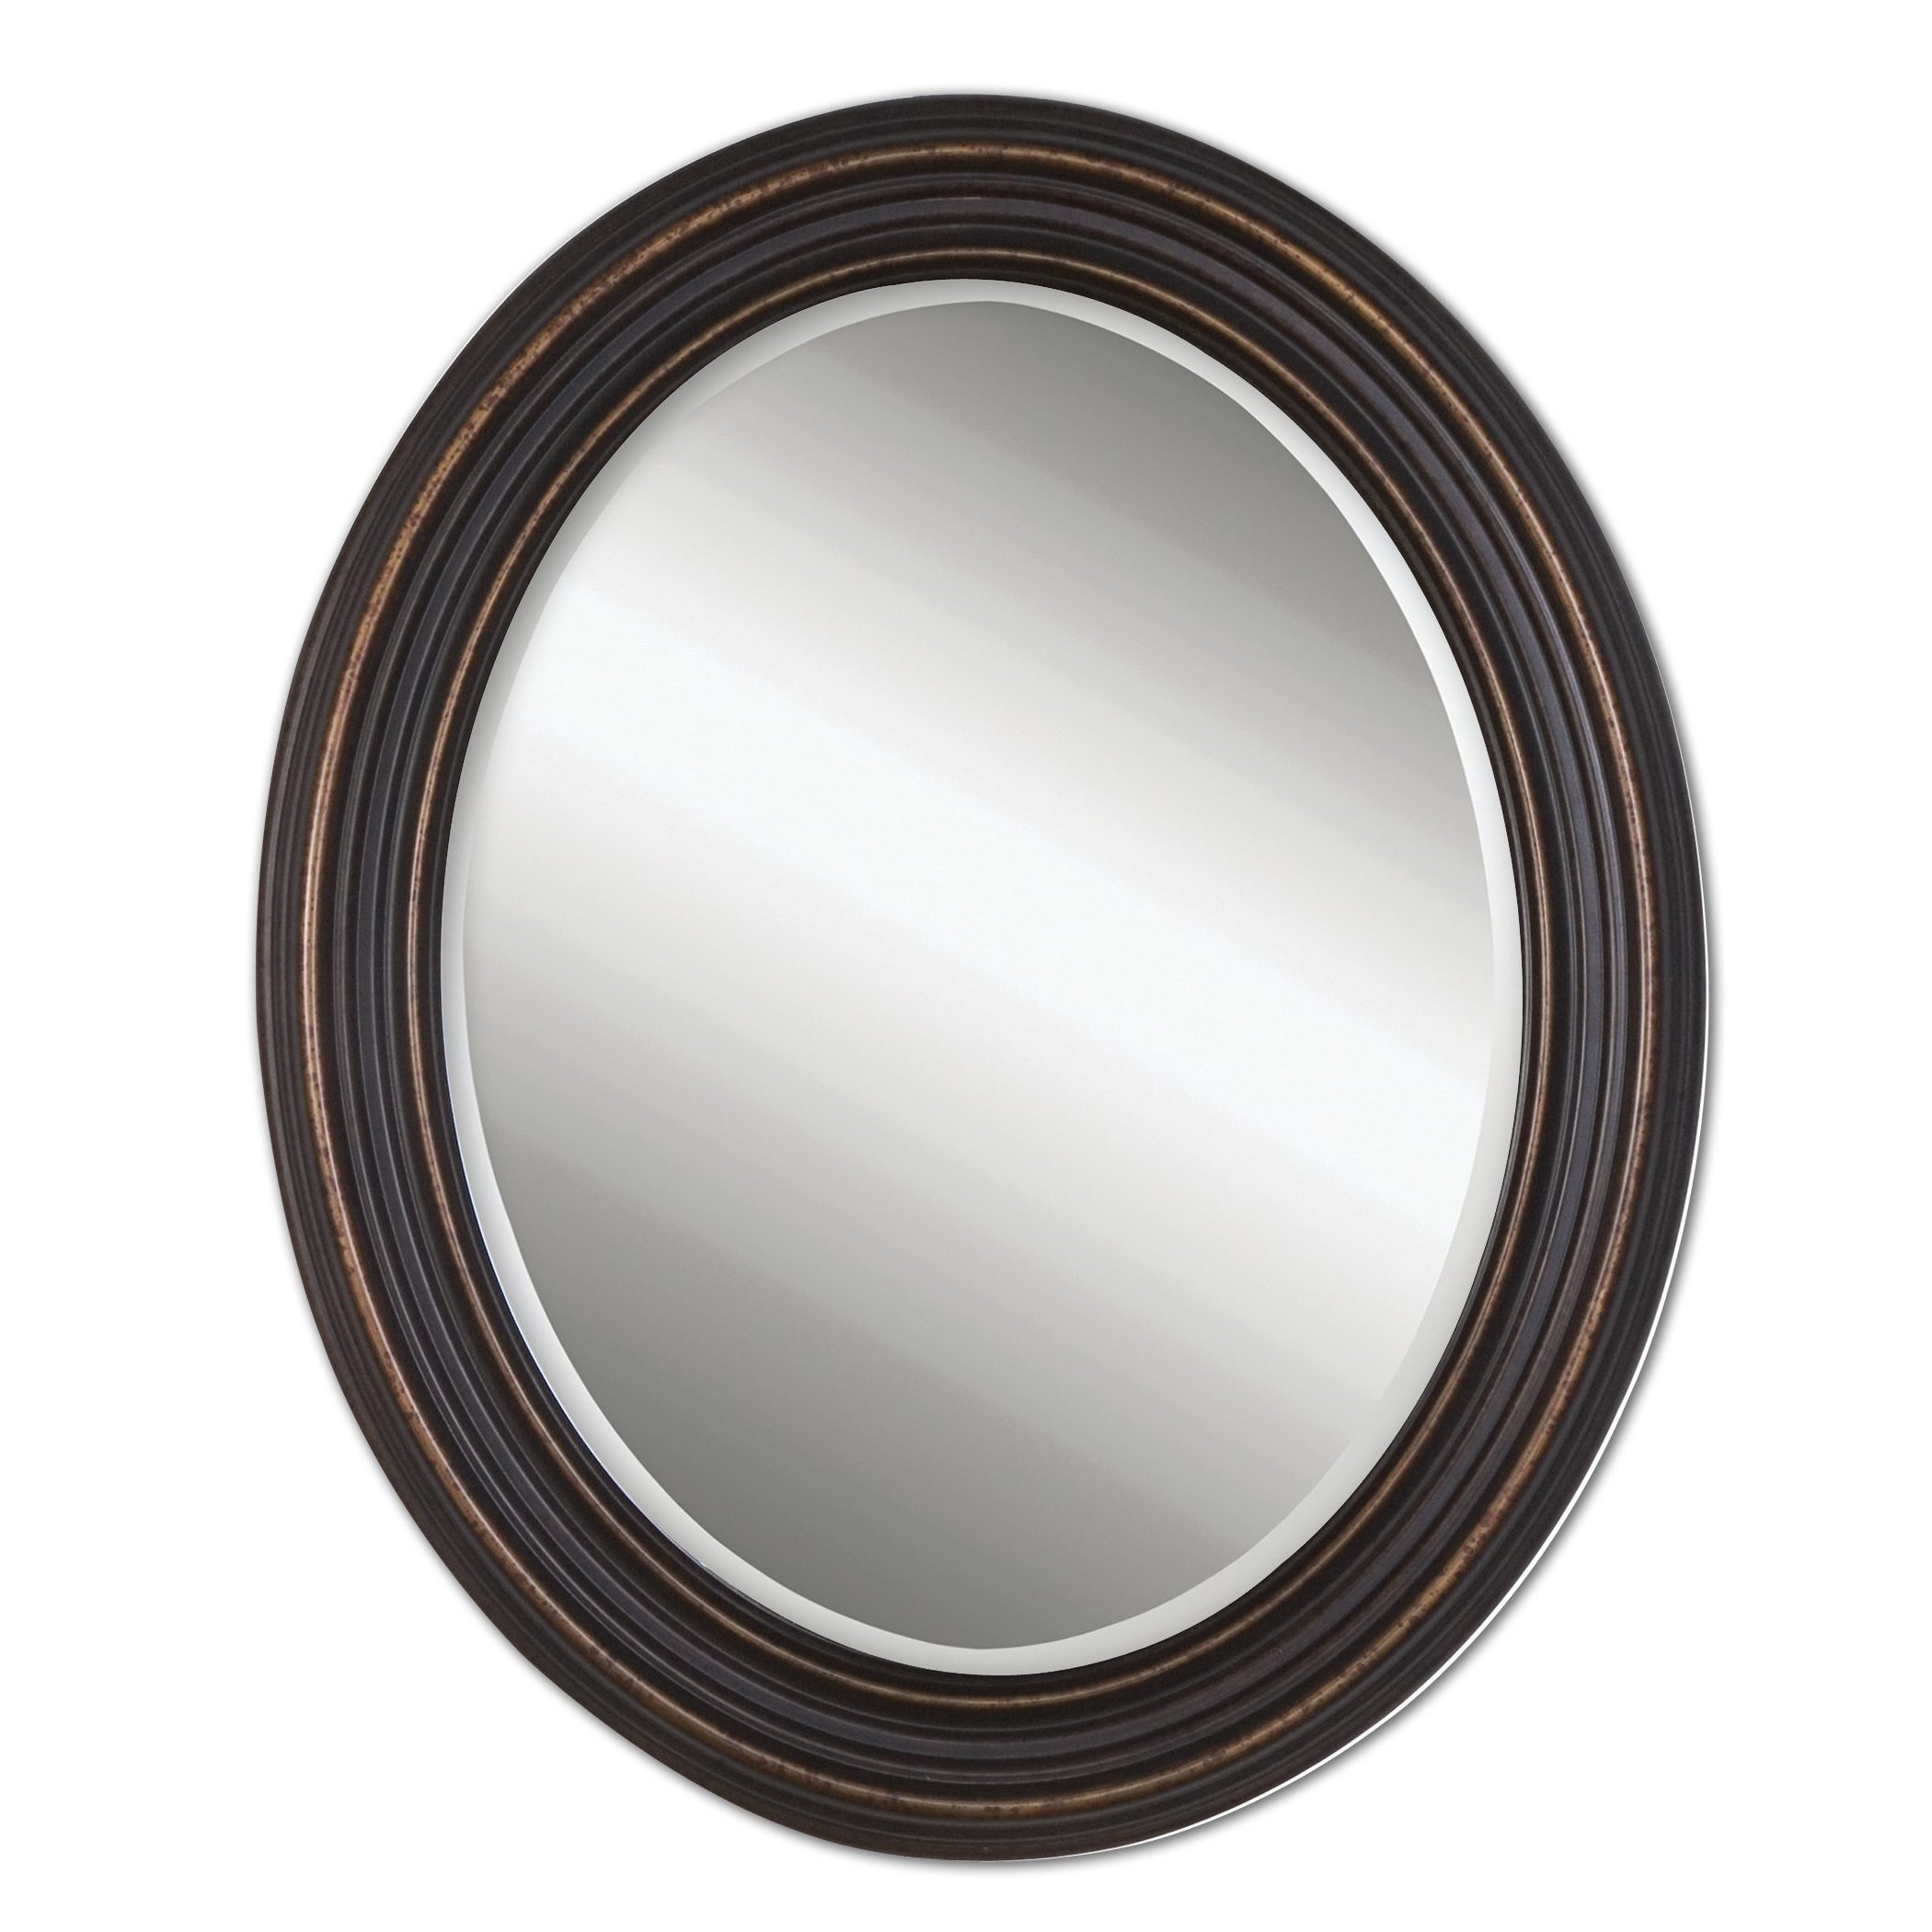 Burnes Oval Traditional Wall Mirrors Throughout Widely Used Burnes Oval Traditional Wall Mirror (View 3 of 20)